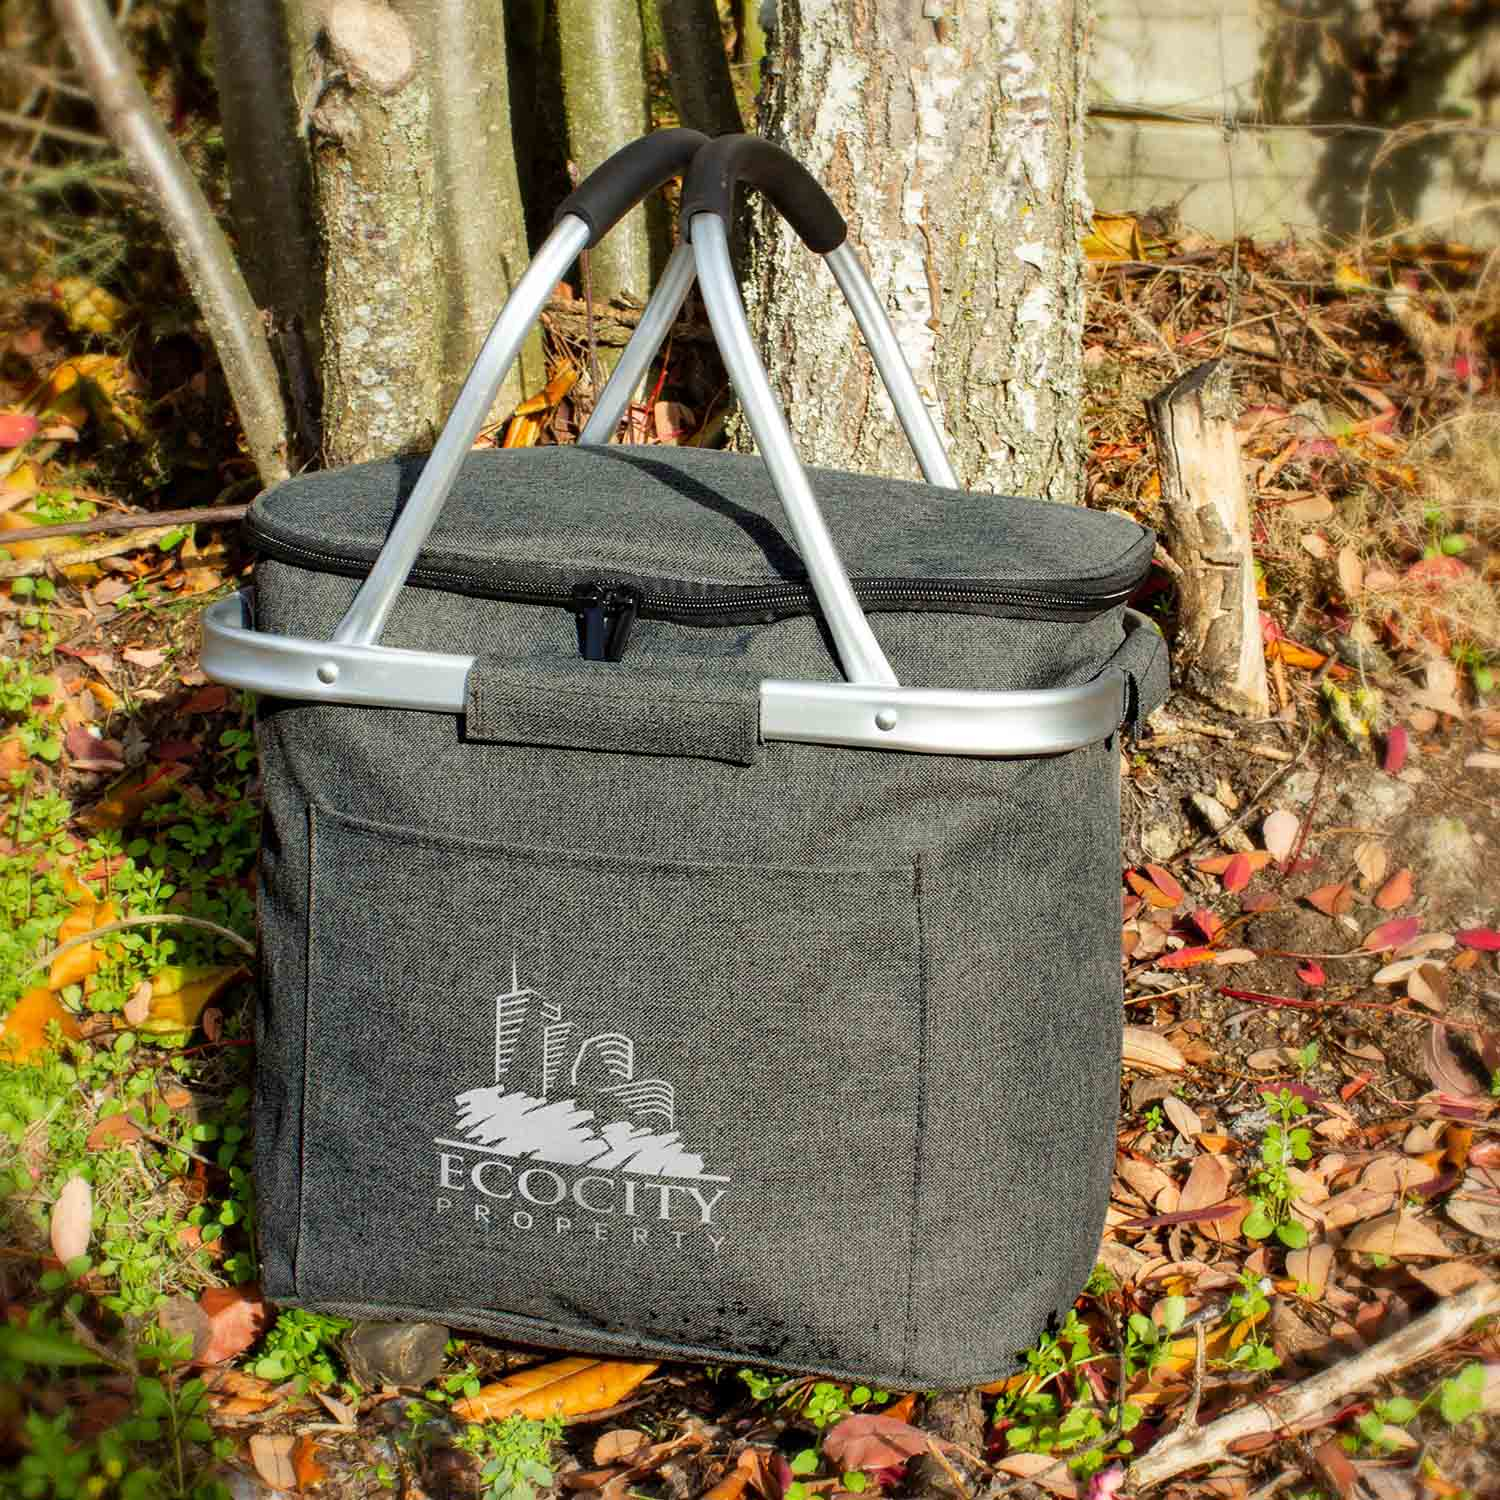 Custom Iceland Cooler Basket Bags Online in Perth